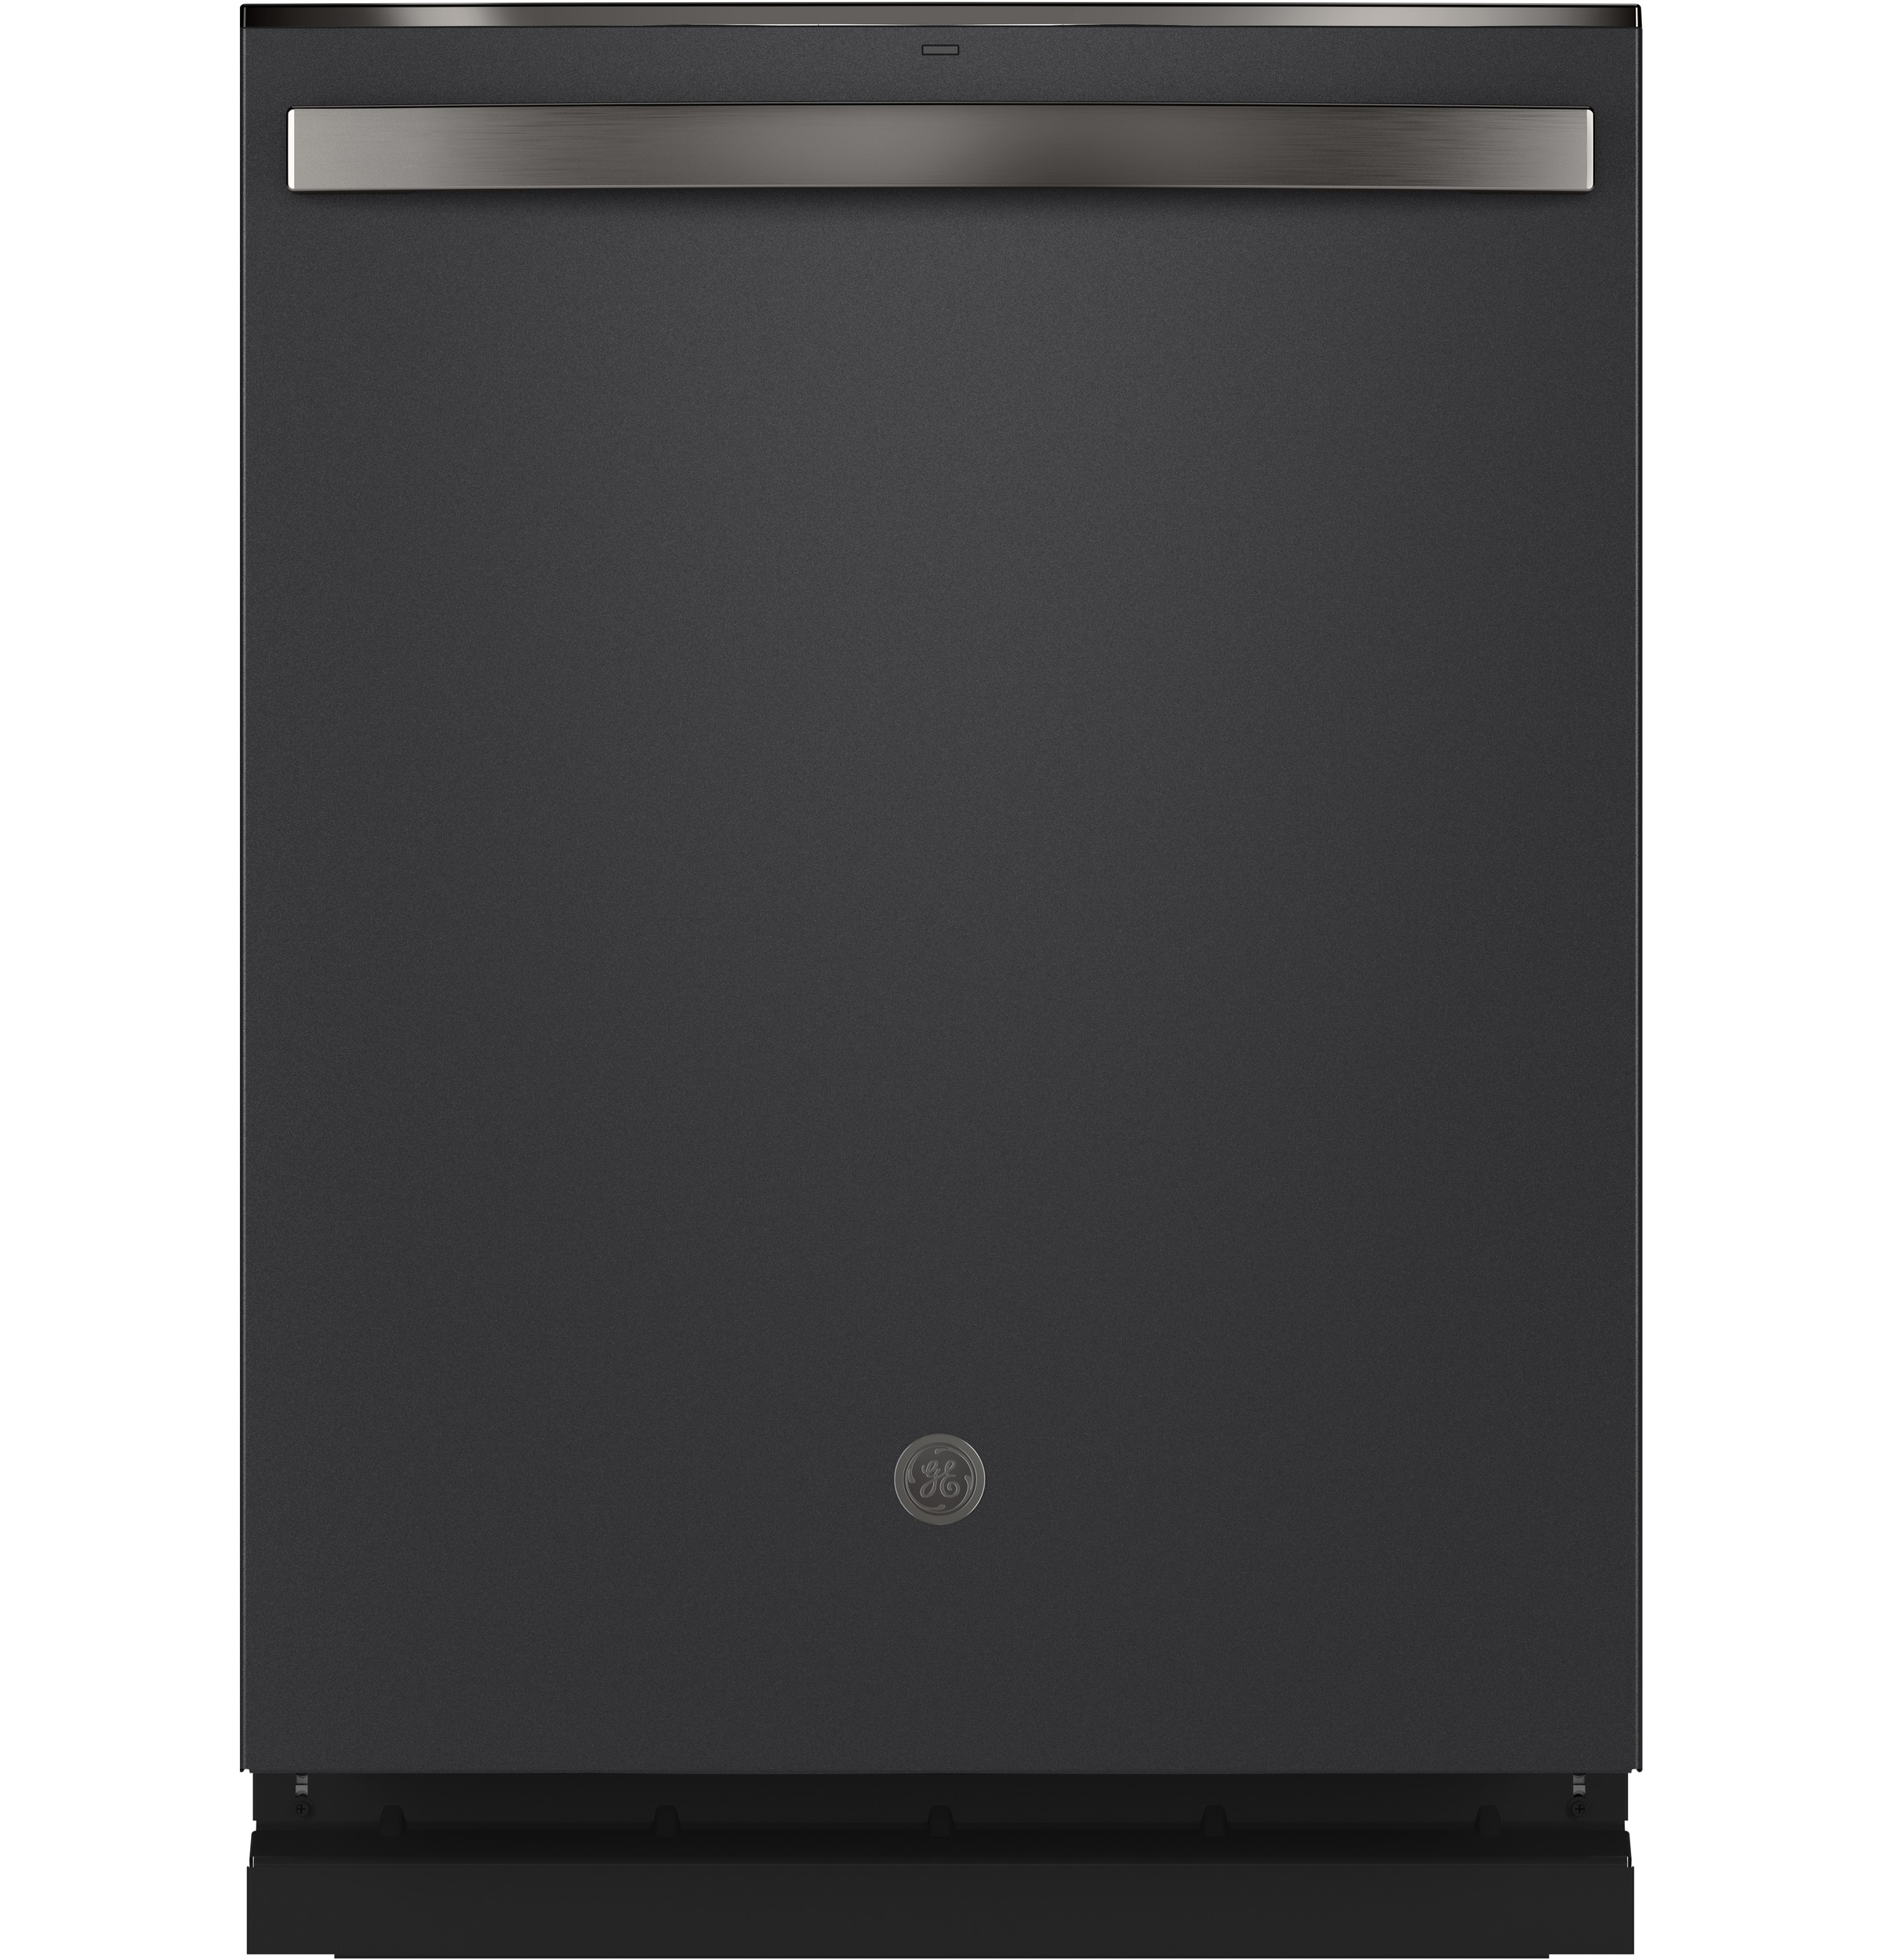 GE GE® Top Control with Stainless Steel Interior Dishwasher with Sanitize Cycle & Dry Boost with Fan Assist